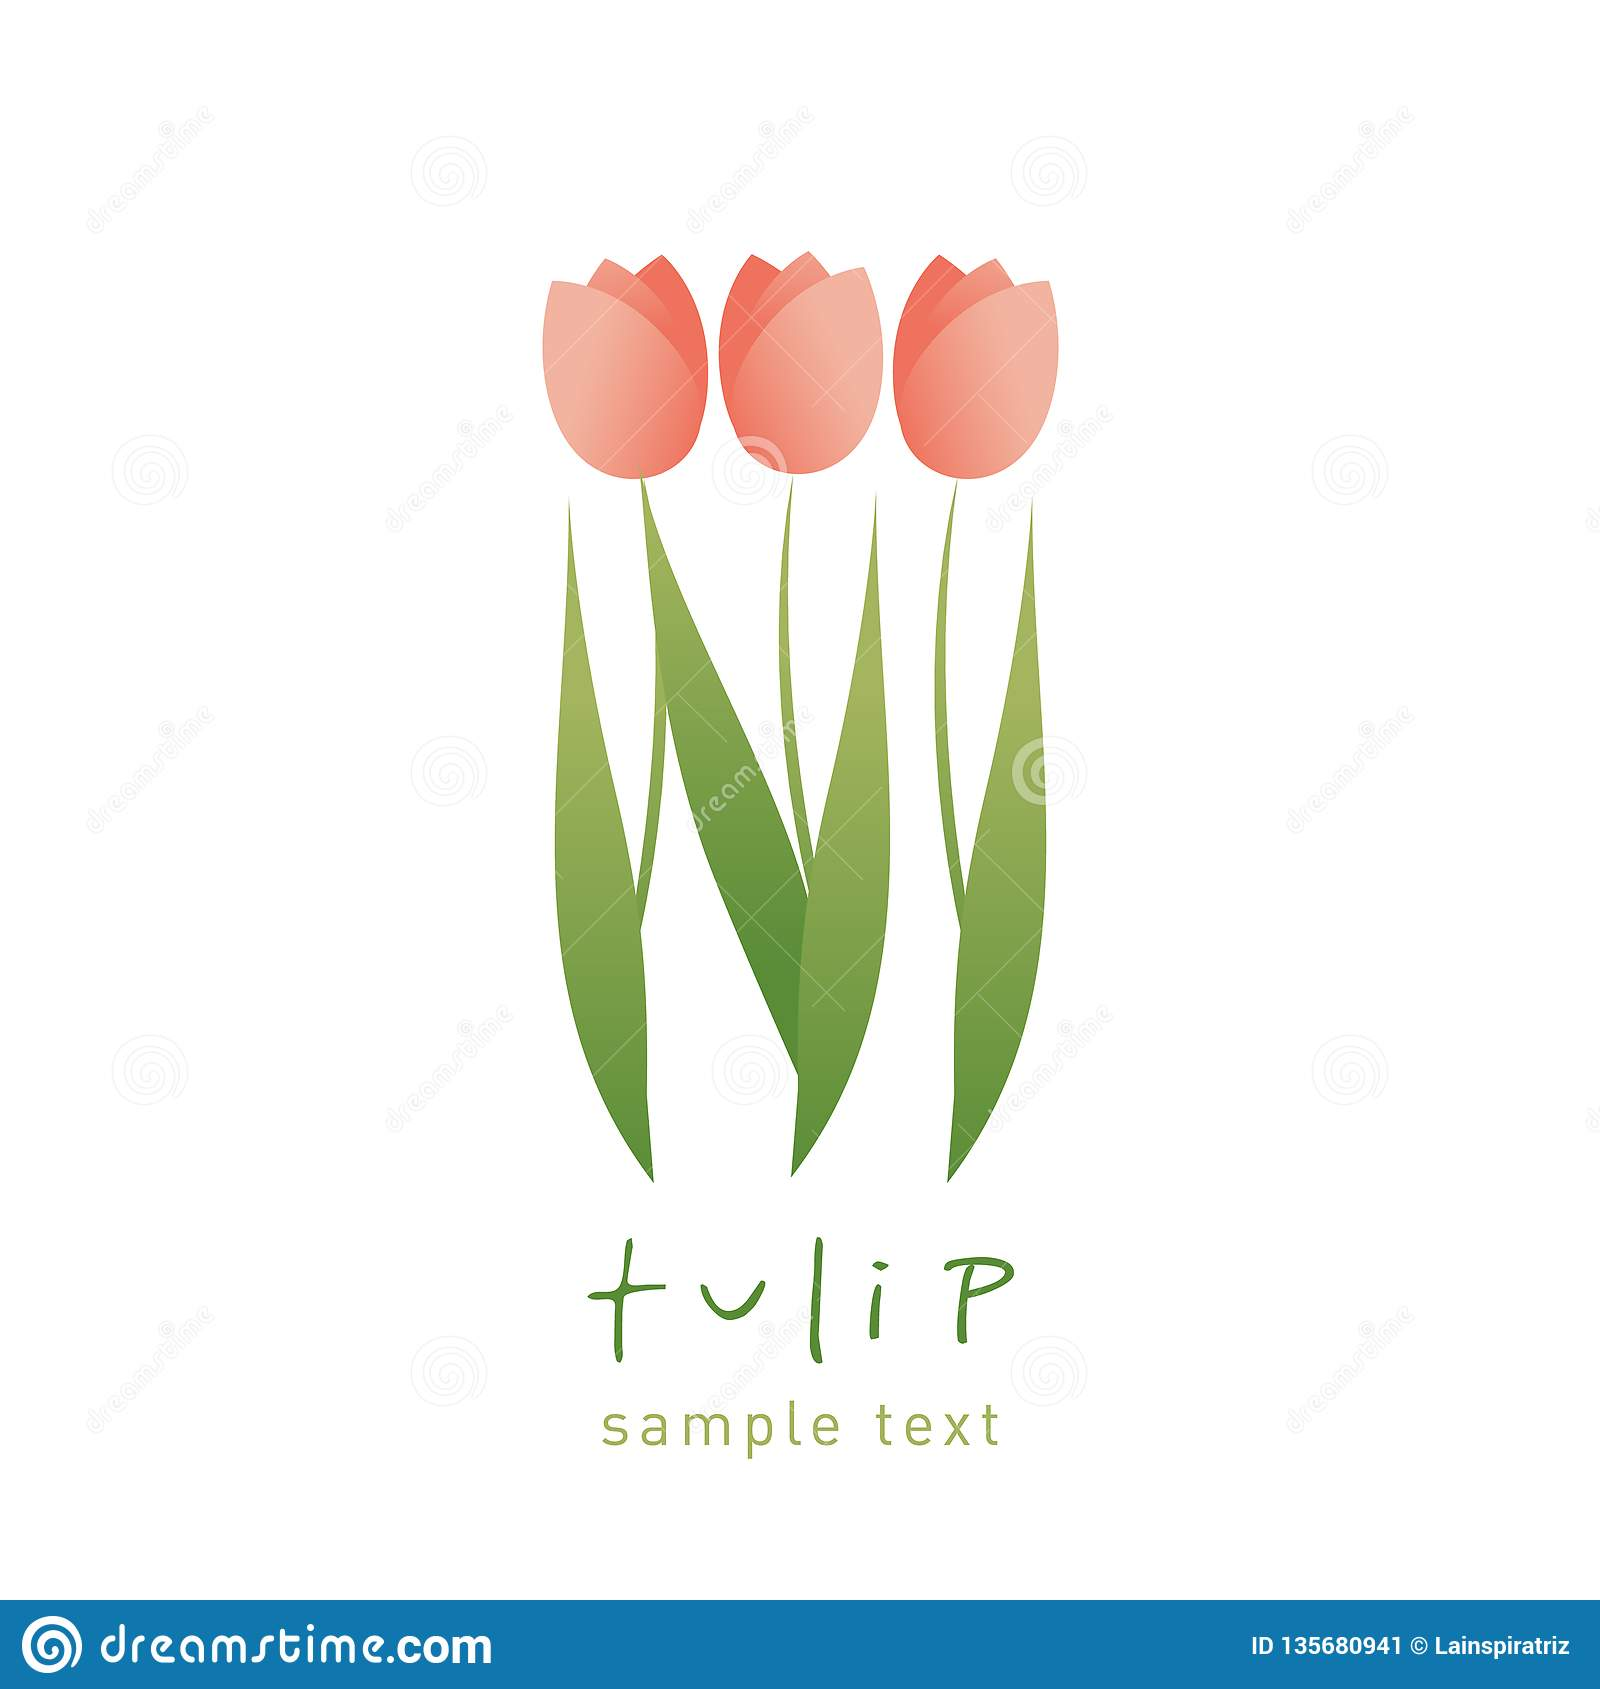 Simple And Stylized Tulip Flowers Isolated On White Background Stock Illustration Illustration Of Drawing Decoration 135680941